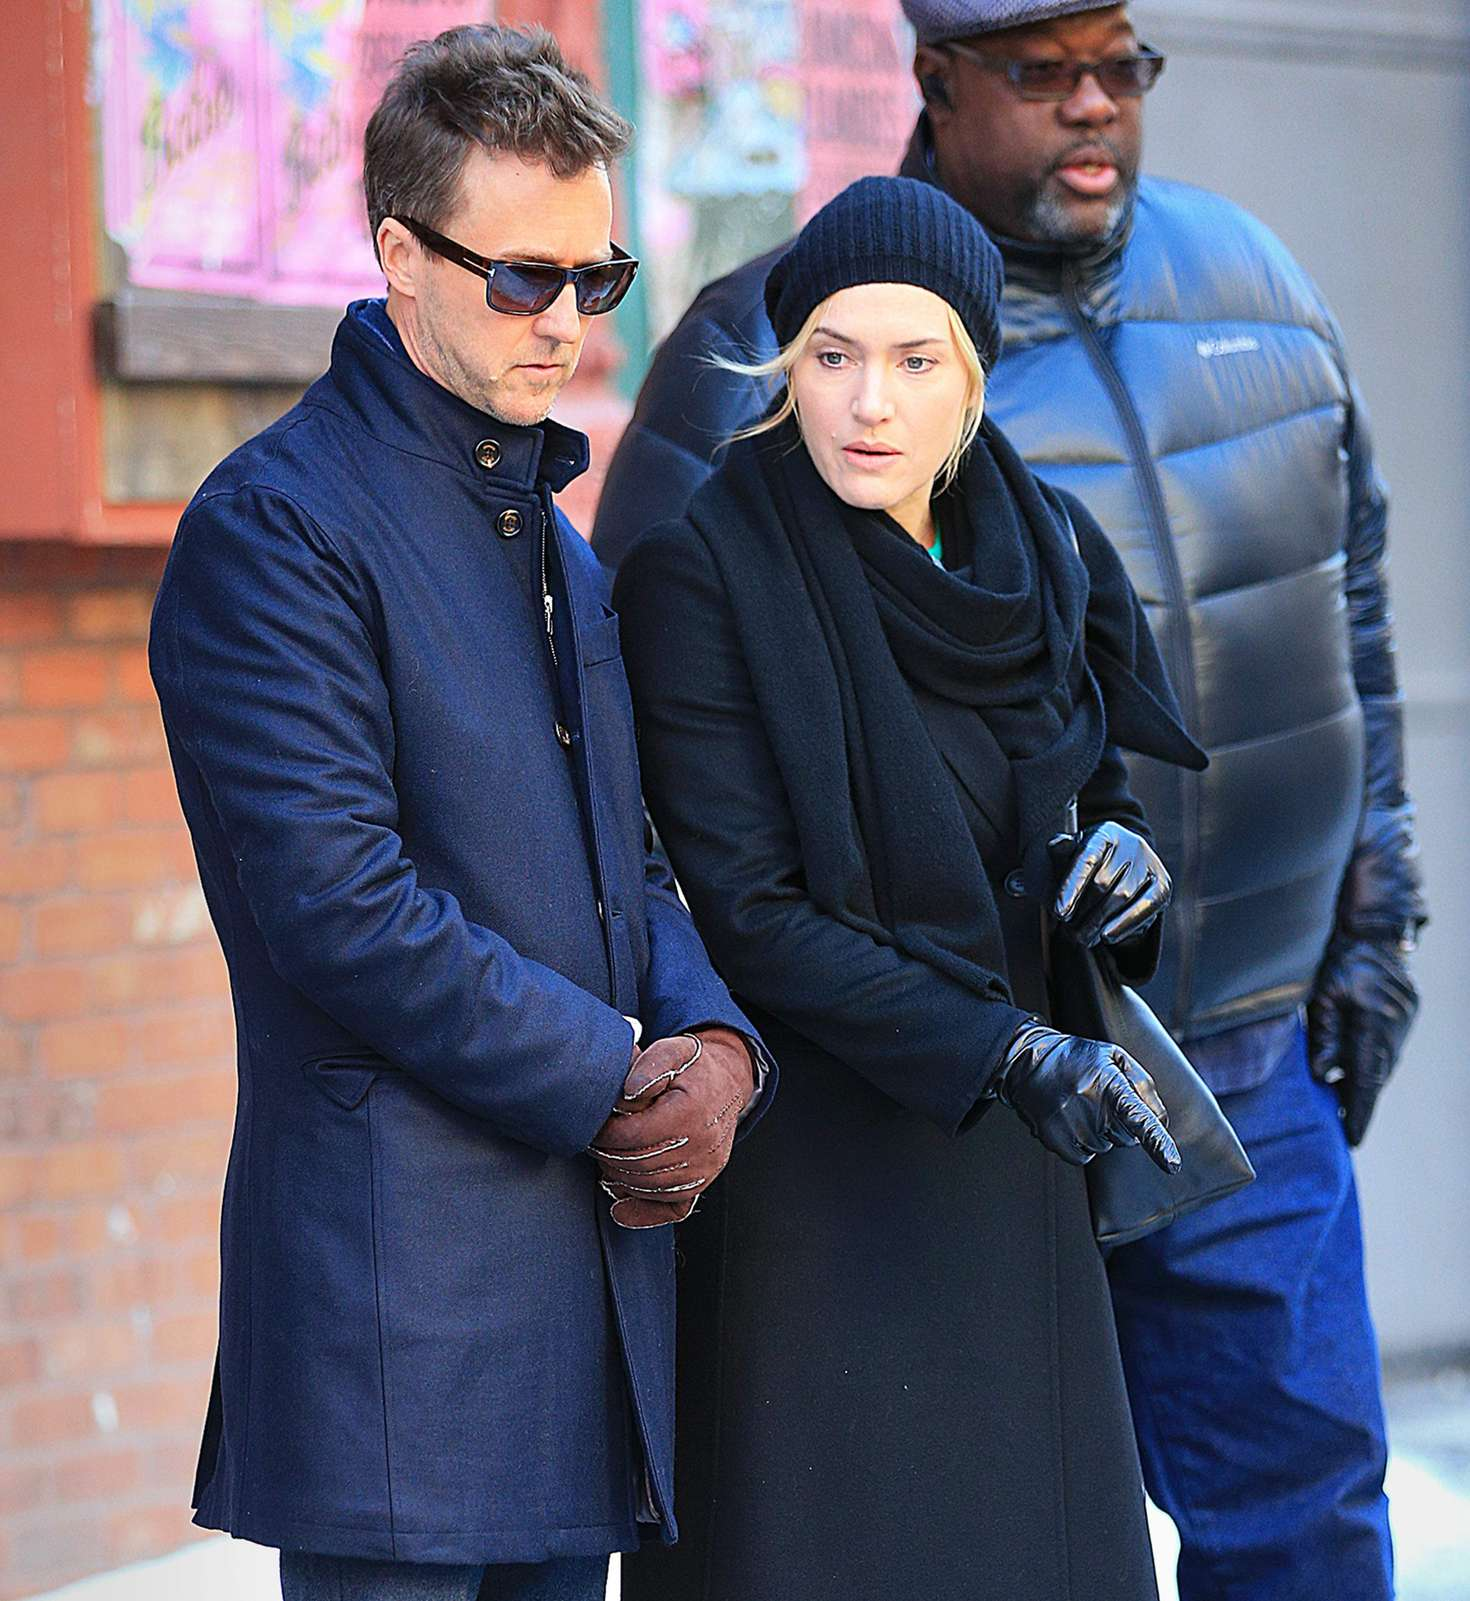 Kate Winslet Filming Collateral Beauty in New York